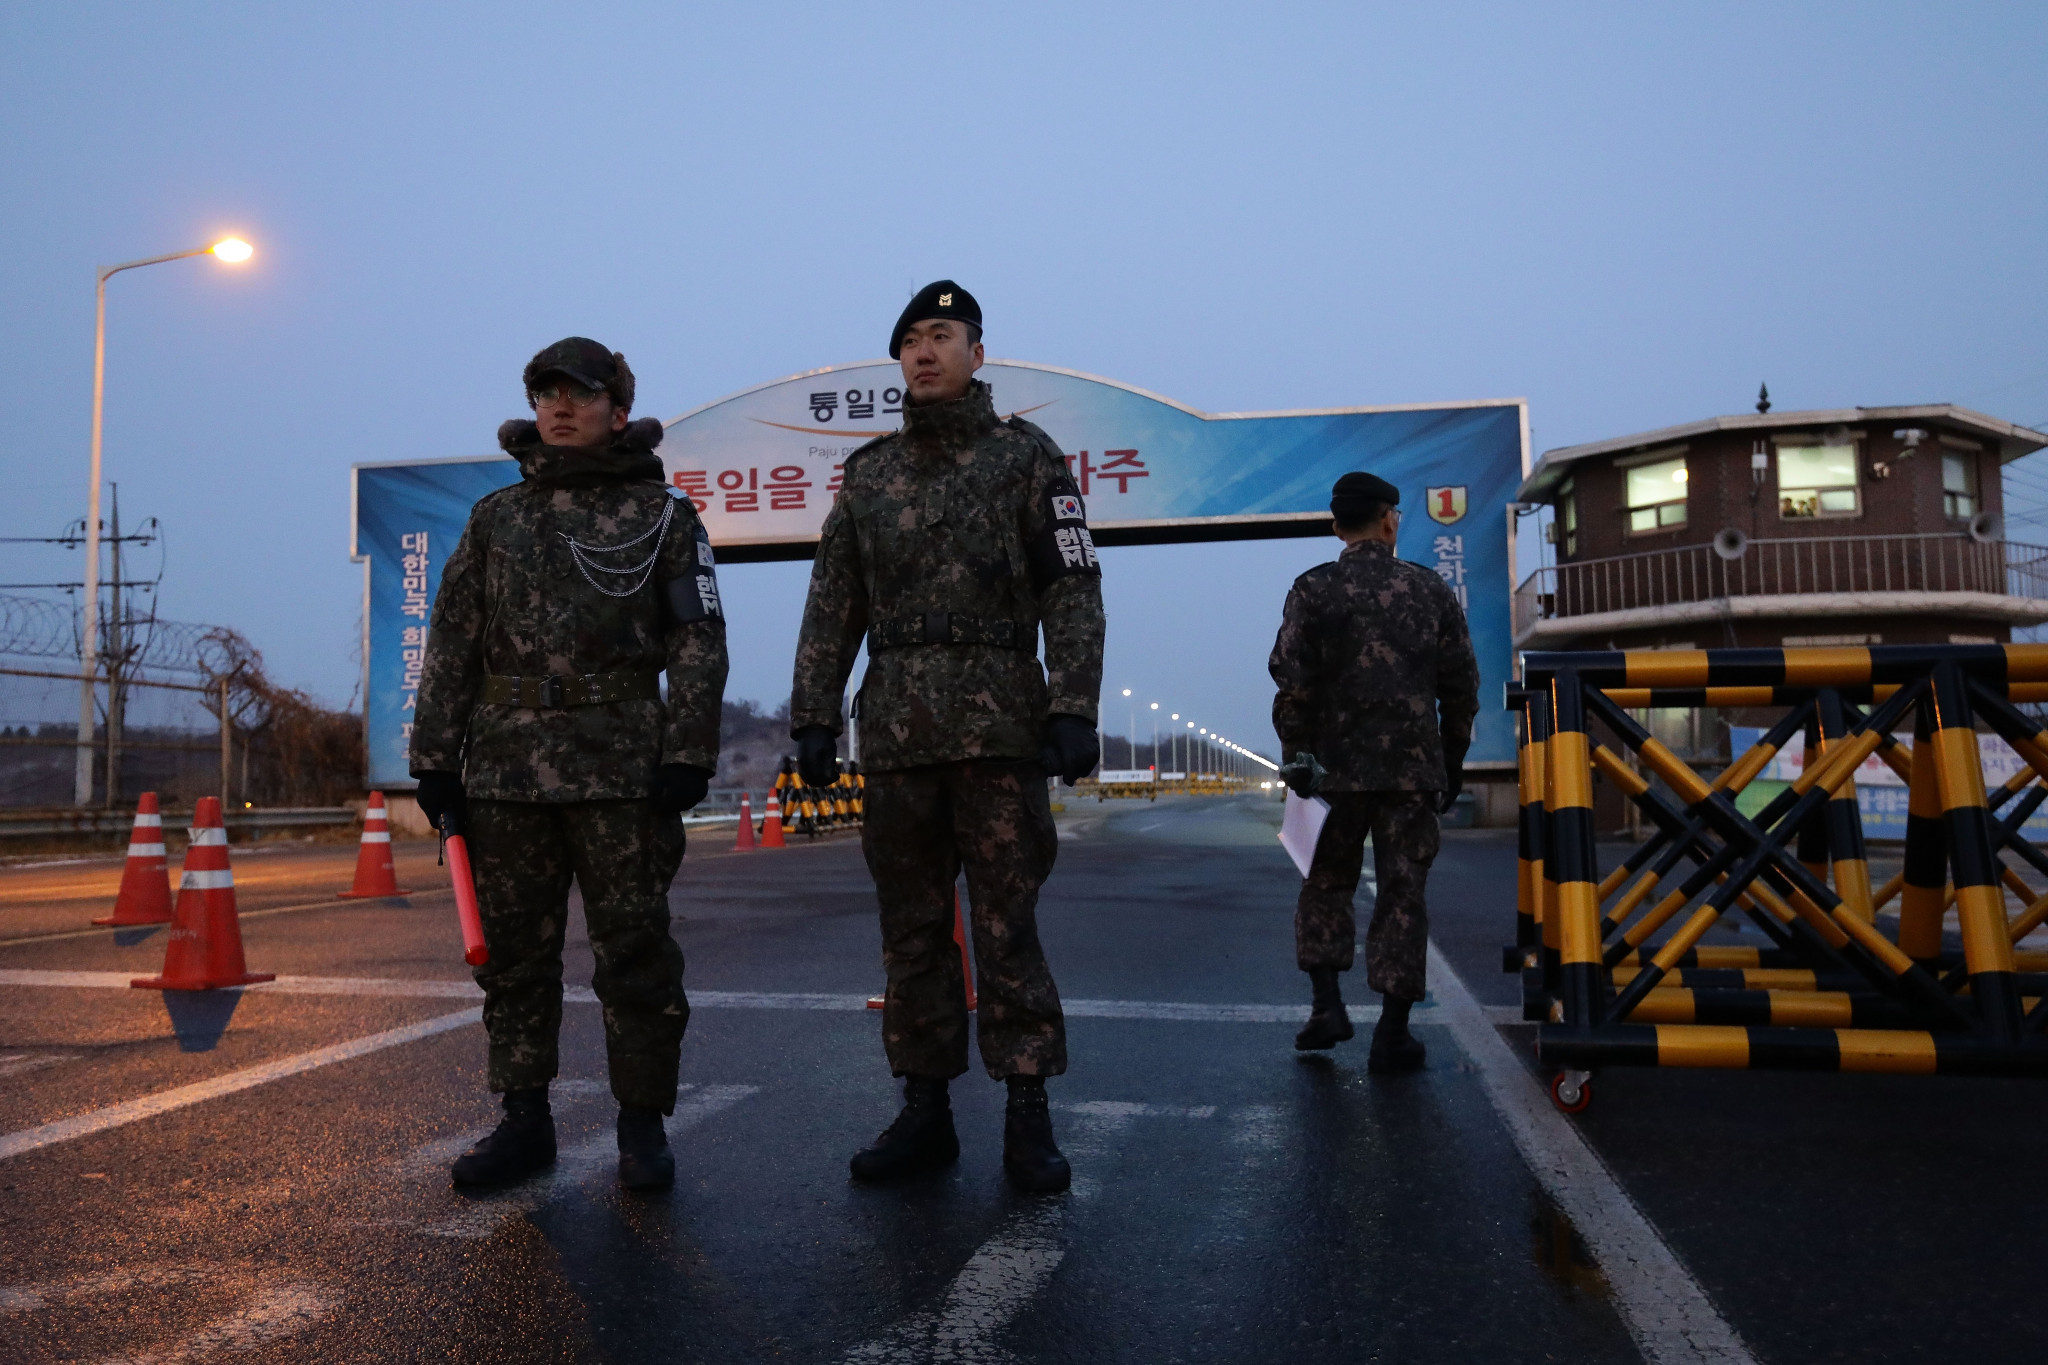 A South Korean solider working on transportation operations for the upcoming Pyeongchang 2018 Winter Olympics has died after slipping while taking a shower ©Getty Images